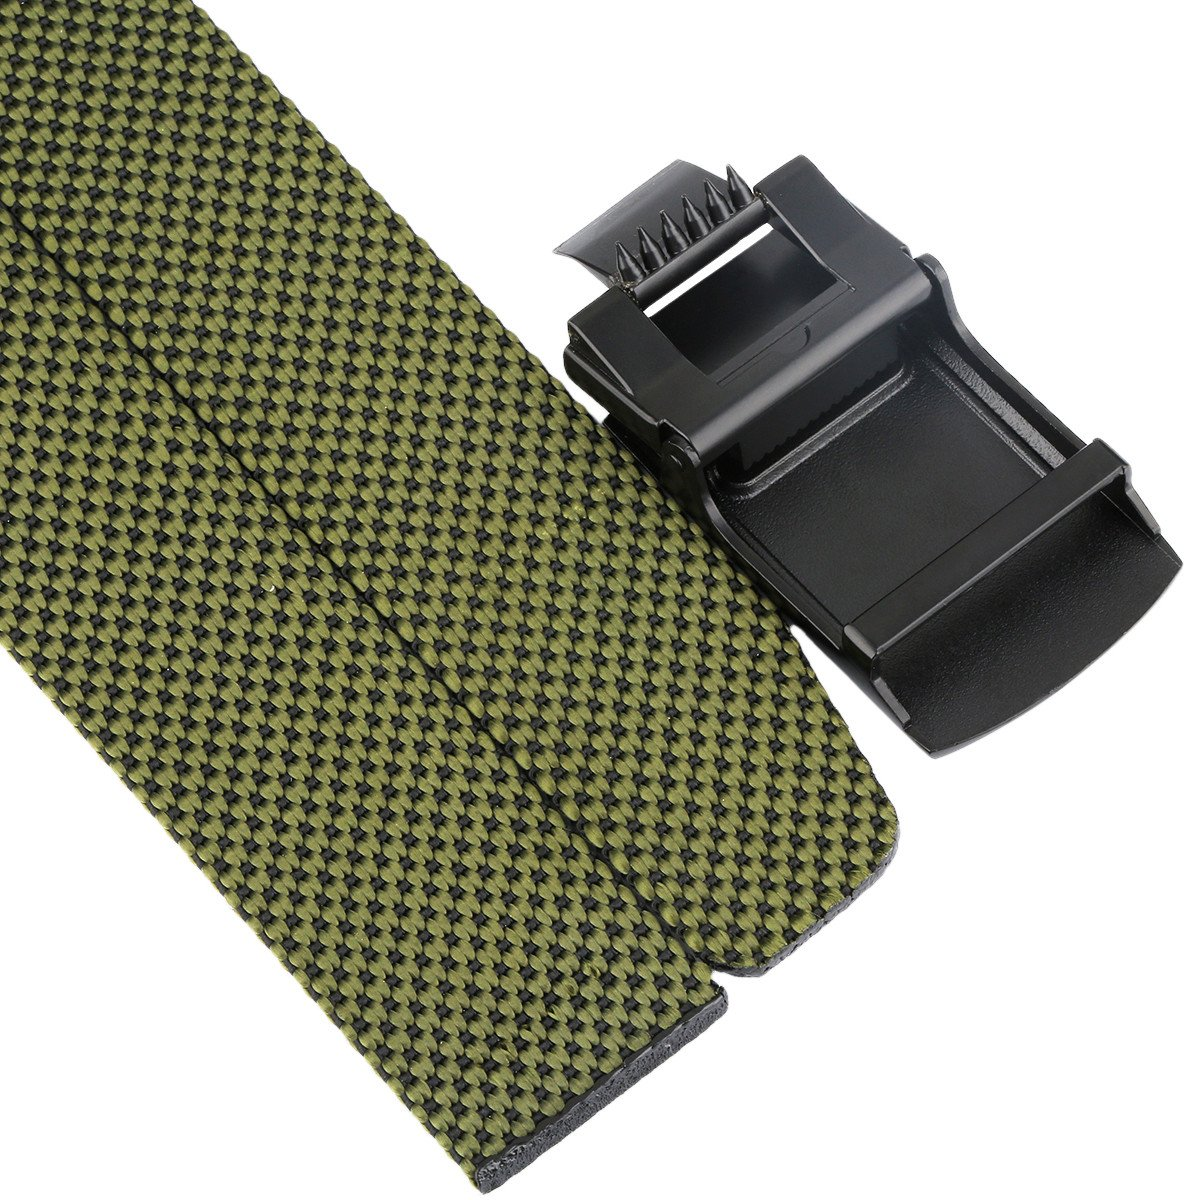 Samtree Braided Woven Belts for Men Tactical Nylon Webbing Belt with Dots